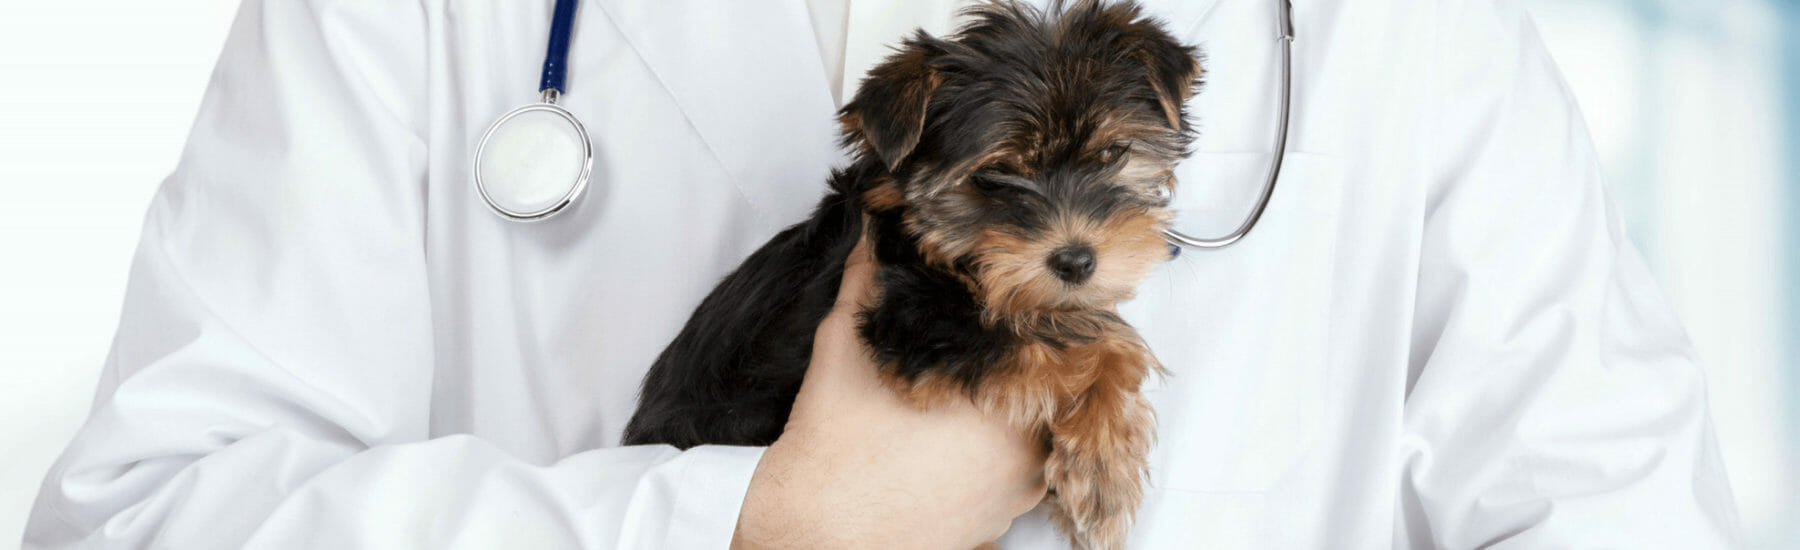 Small dog being held by a veterinarian